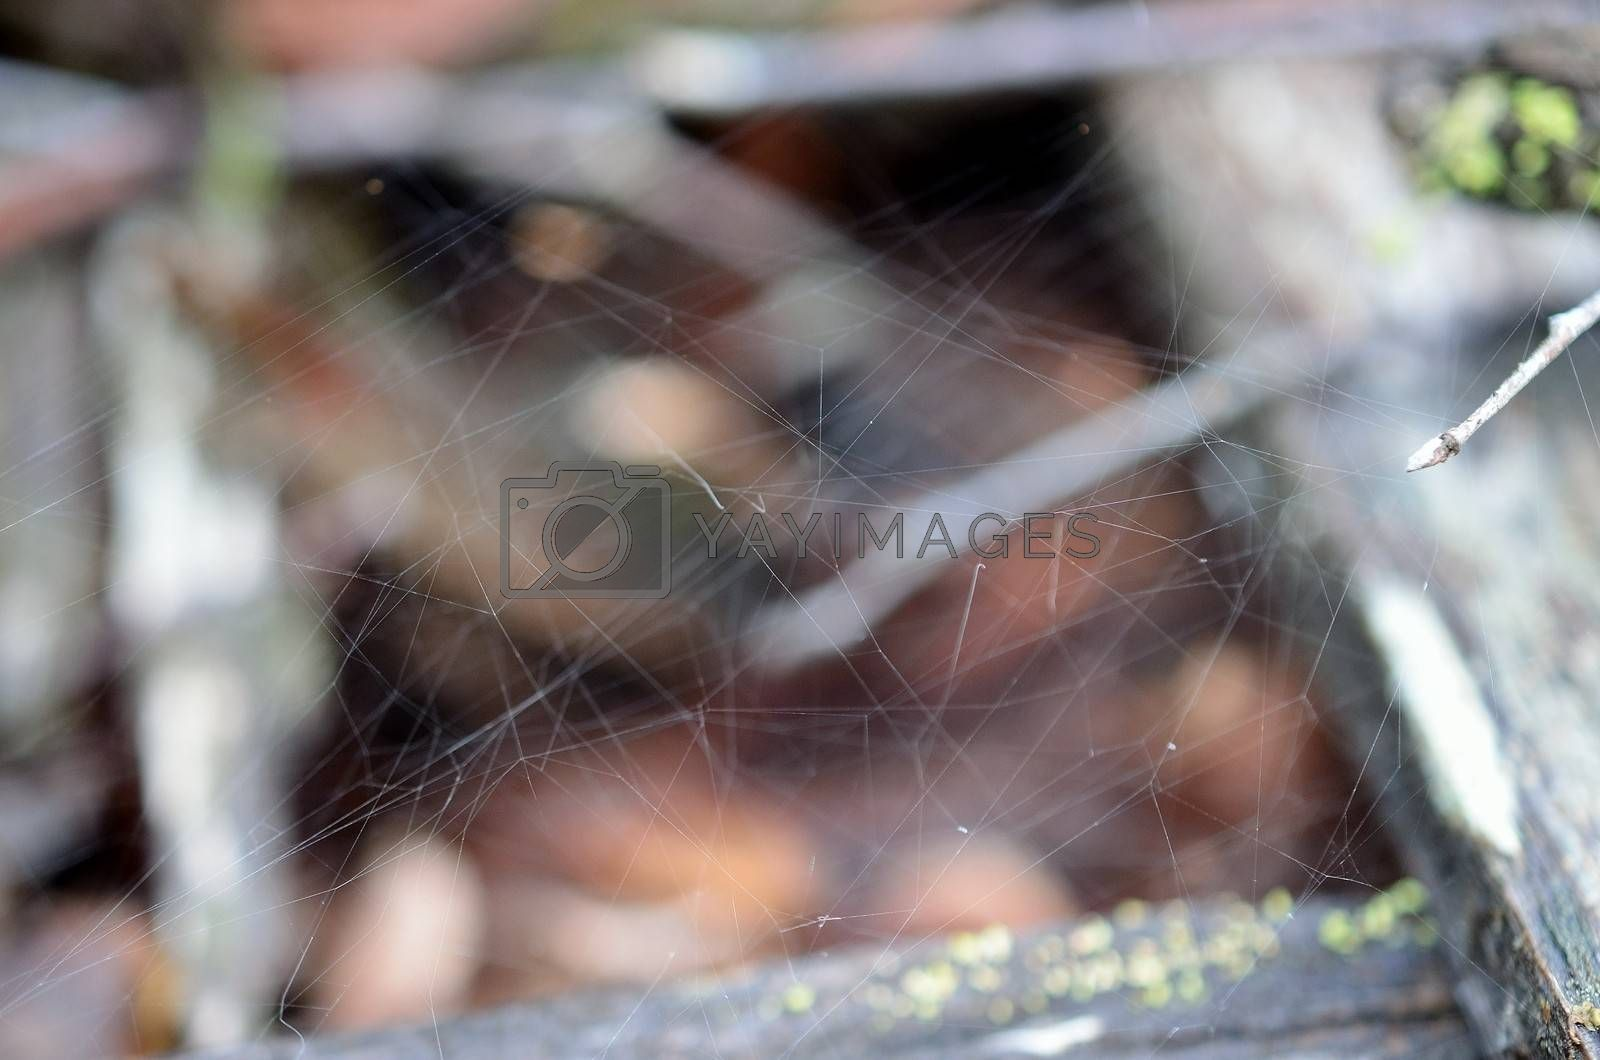 Royalty free image of Beautiful and strong spiderweb in the nature by Finephotoworks